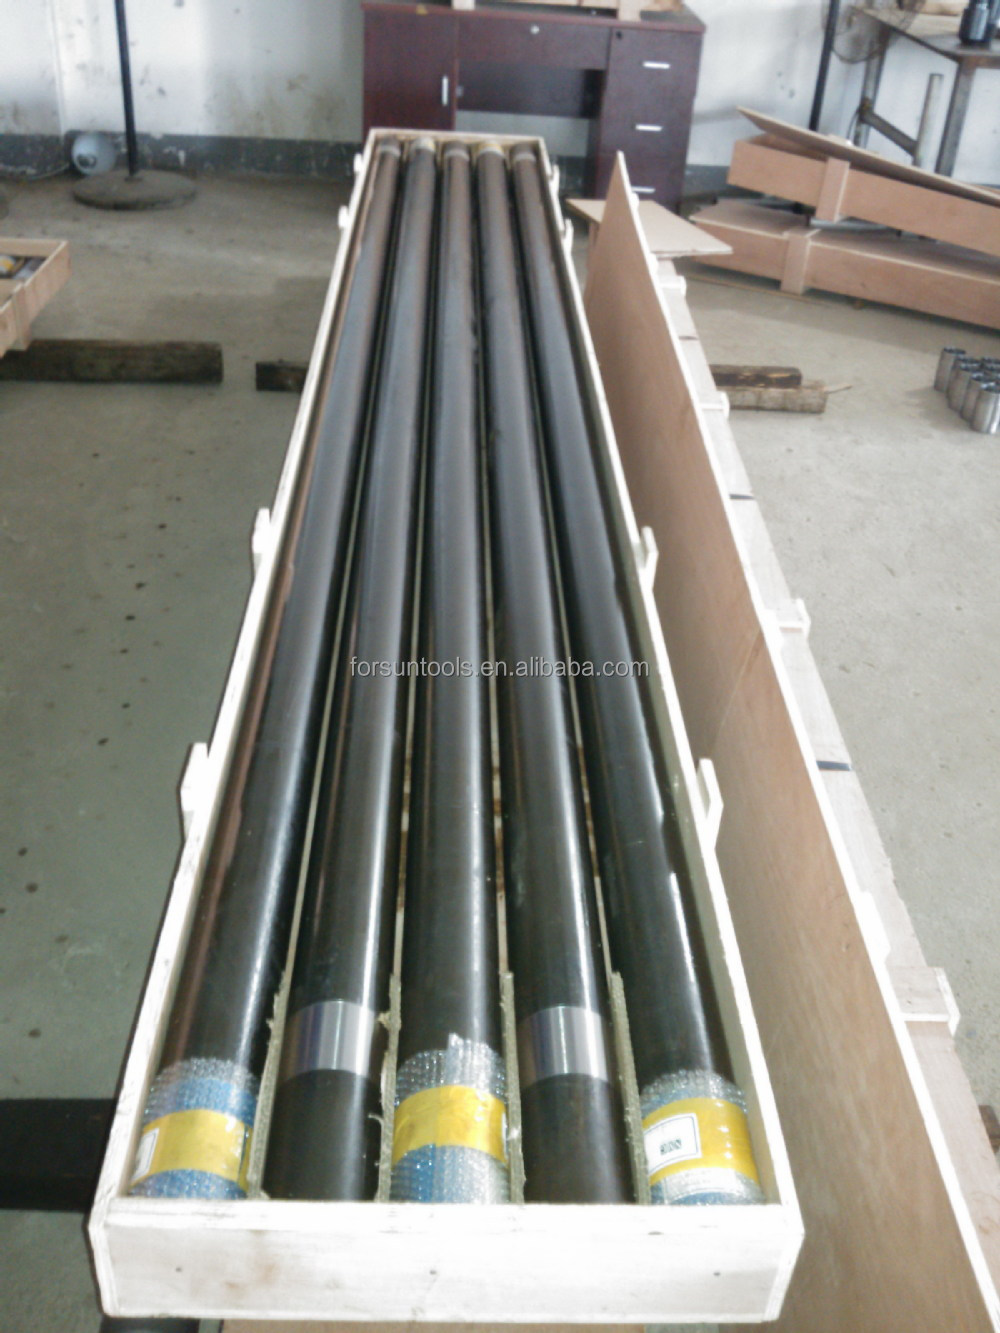 Made in China Drilling Core Barrel BQ NQ HQ PQ T2 T6 BMLC NMLC HMLC LTK